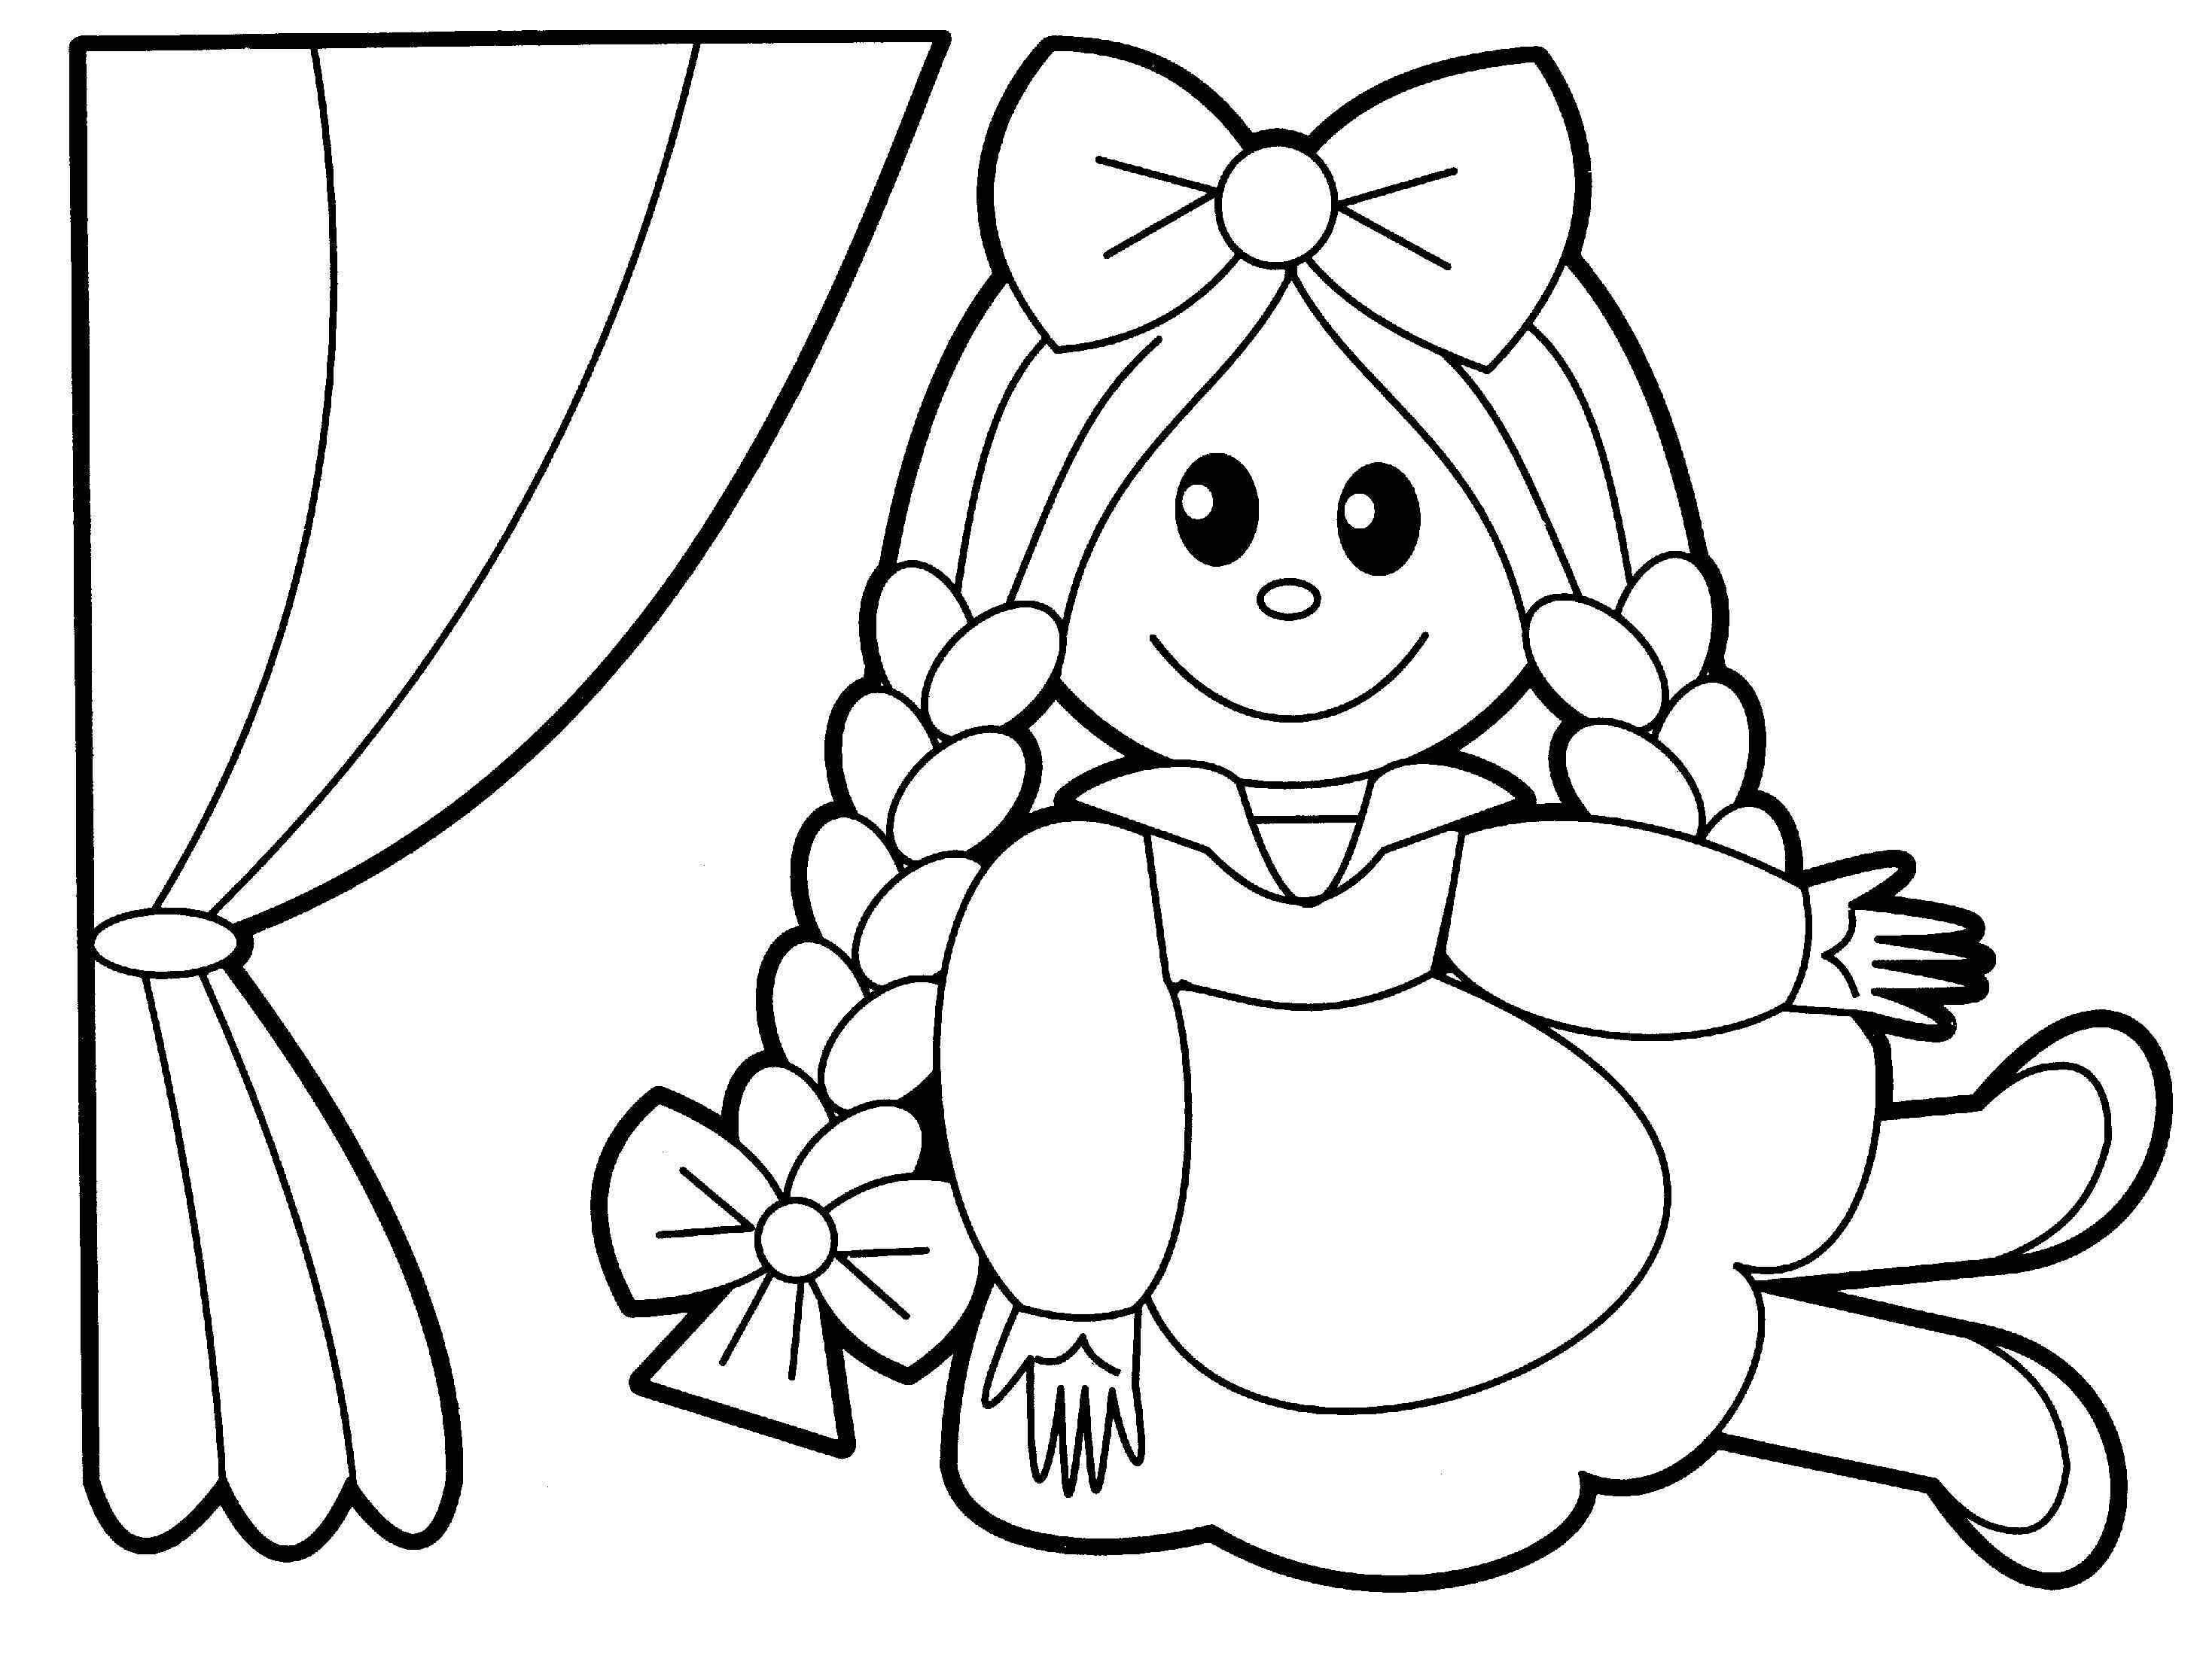 doll coloring page toys coloring pages best coloring pages for kids doll coloring page